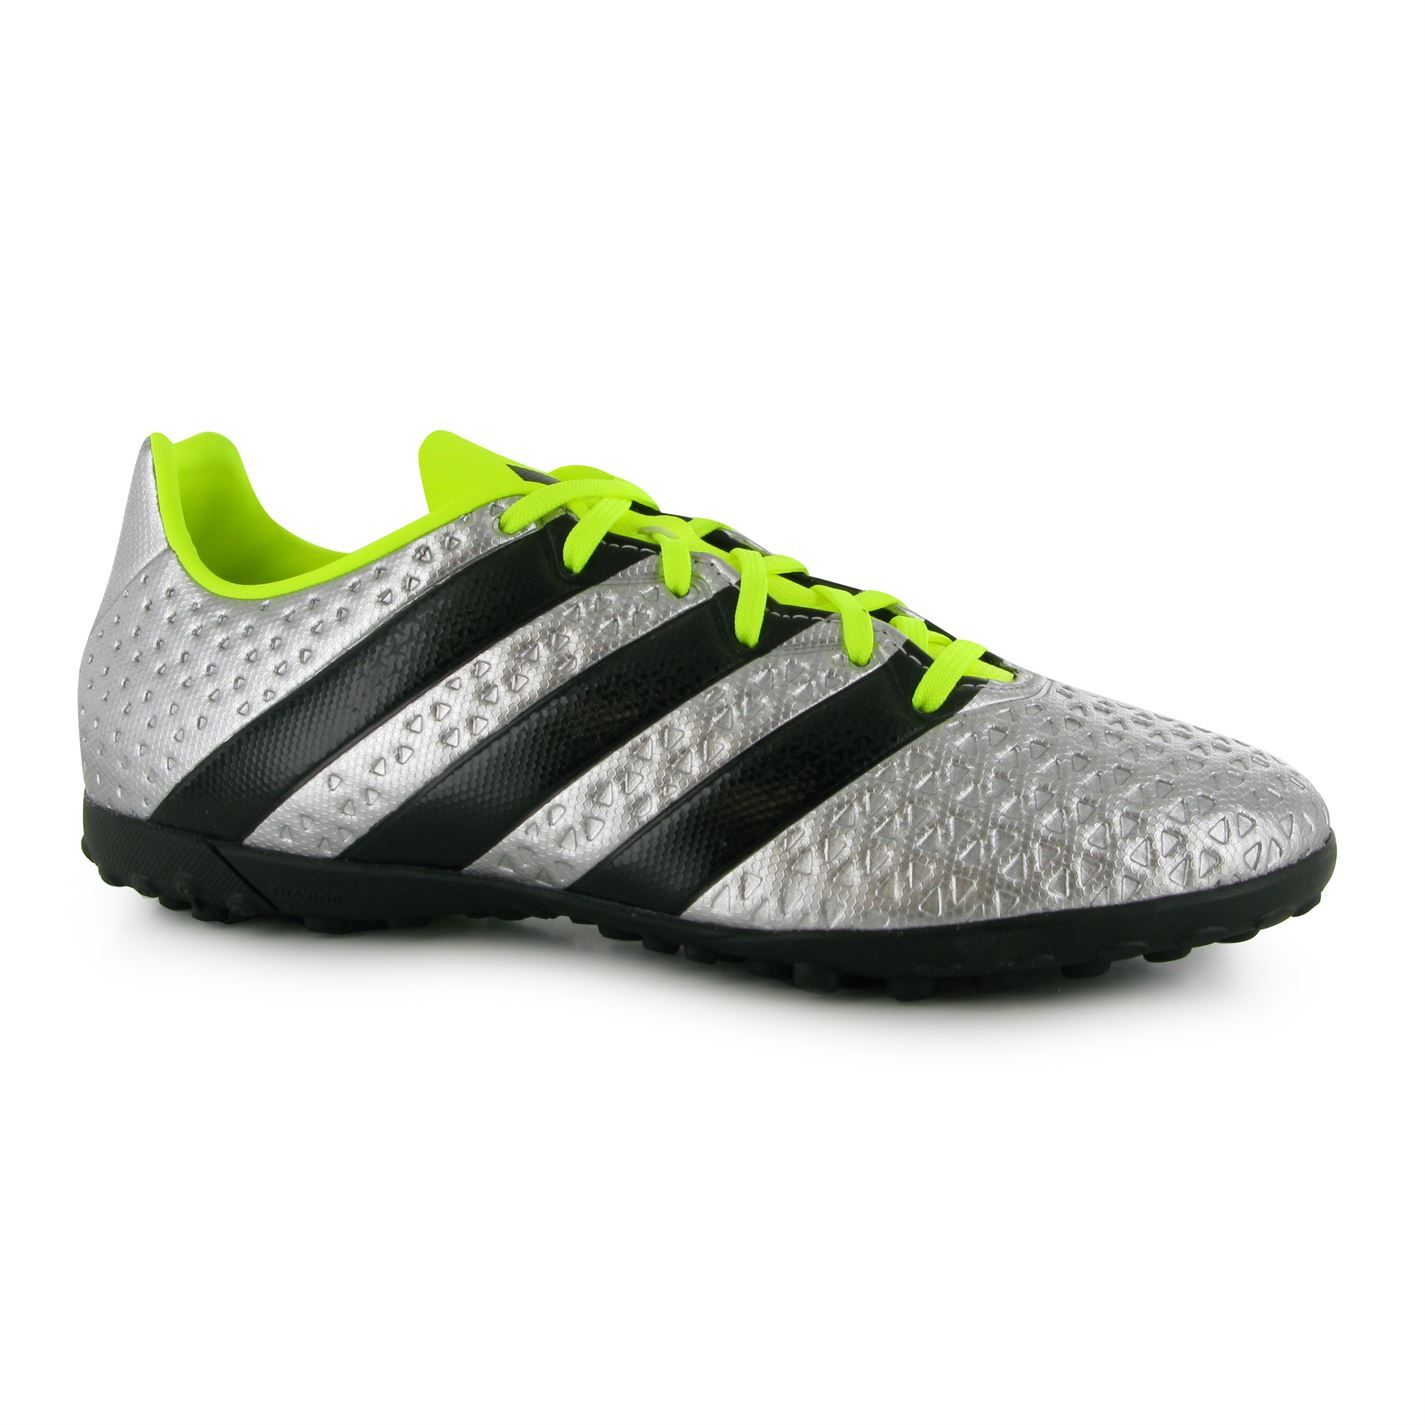 Ace 16.4 Astro Turf Trainers Mens